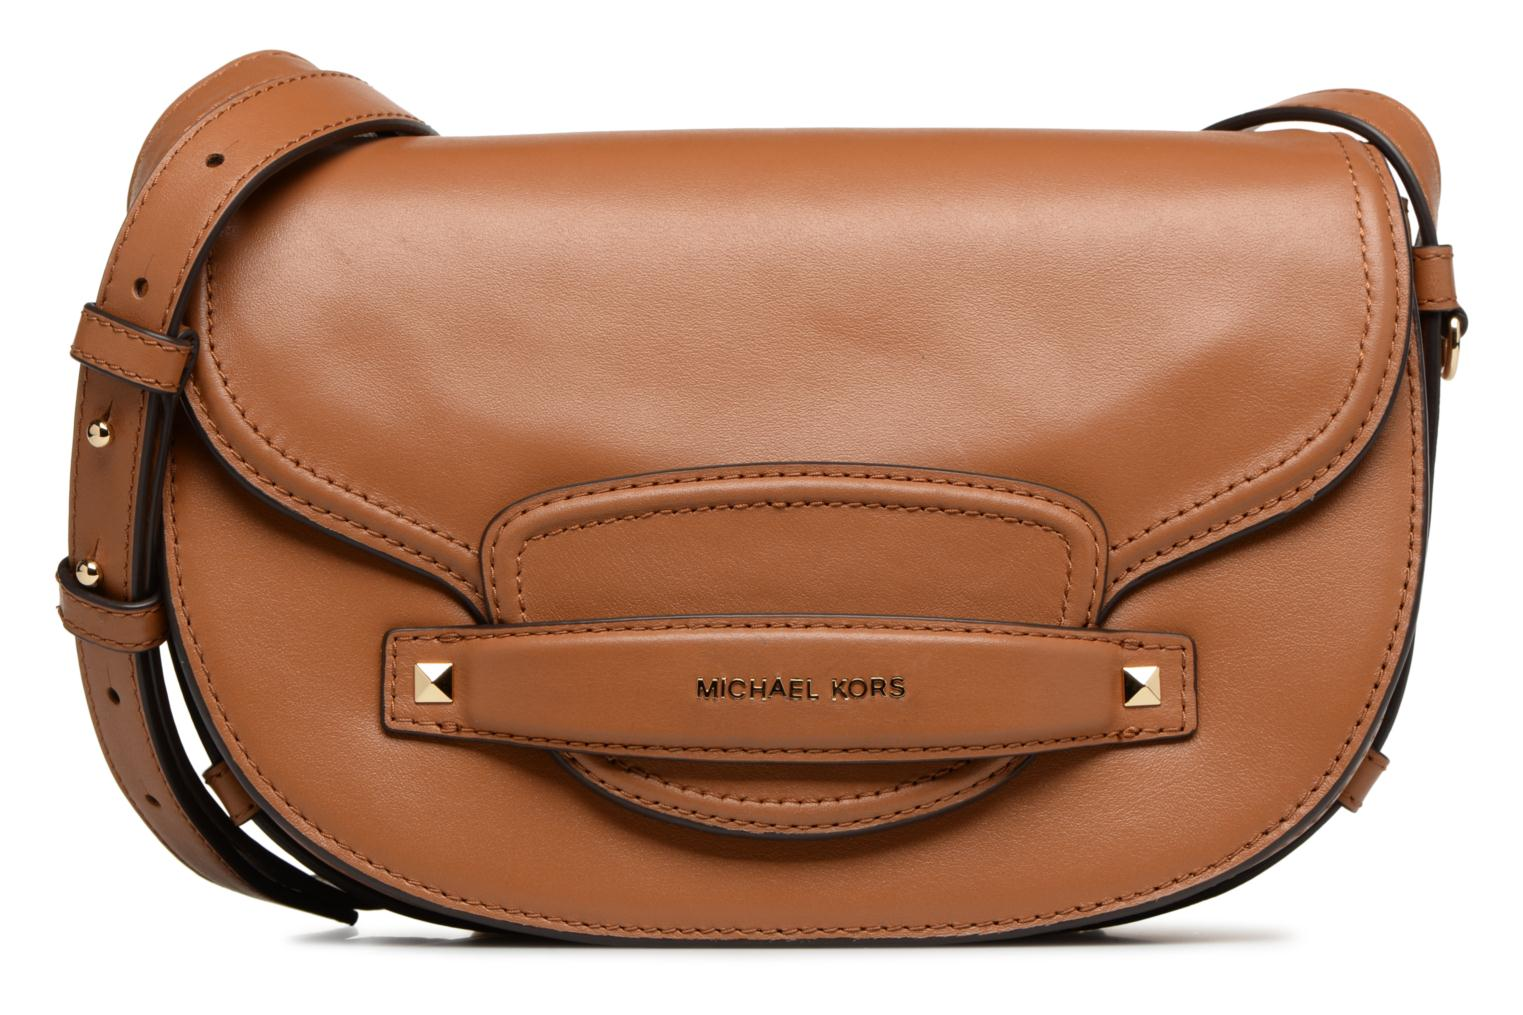 CARY MD SADDLE BAG